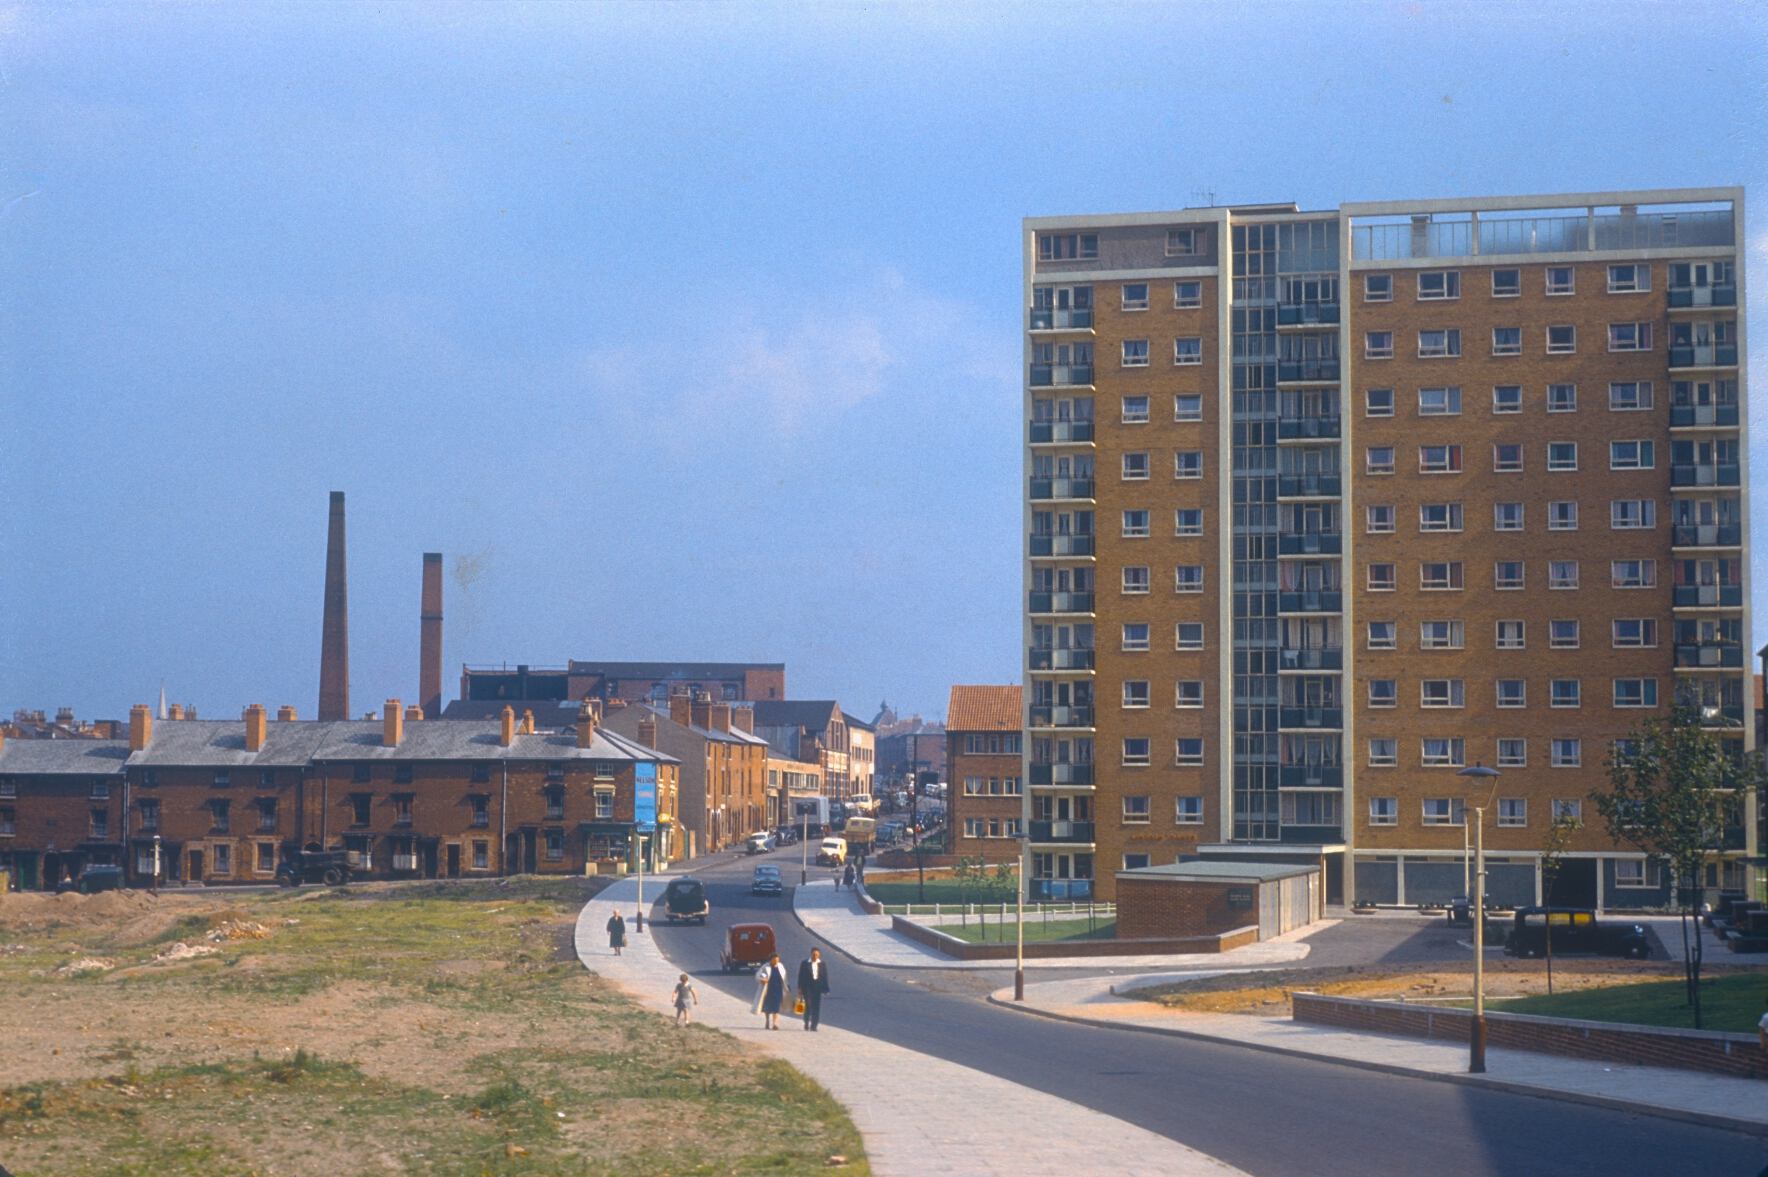 Ladywood, Gilby Rd, Lincoln Tower new flats in Ladywood redevelopment area. View towards Morville St (L) and Ruston St (beyond Gilby Rd) 10th August 1960